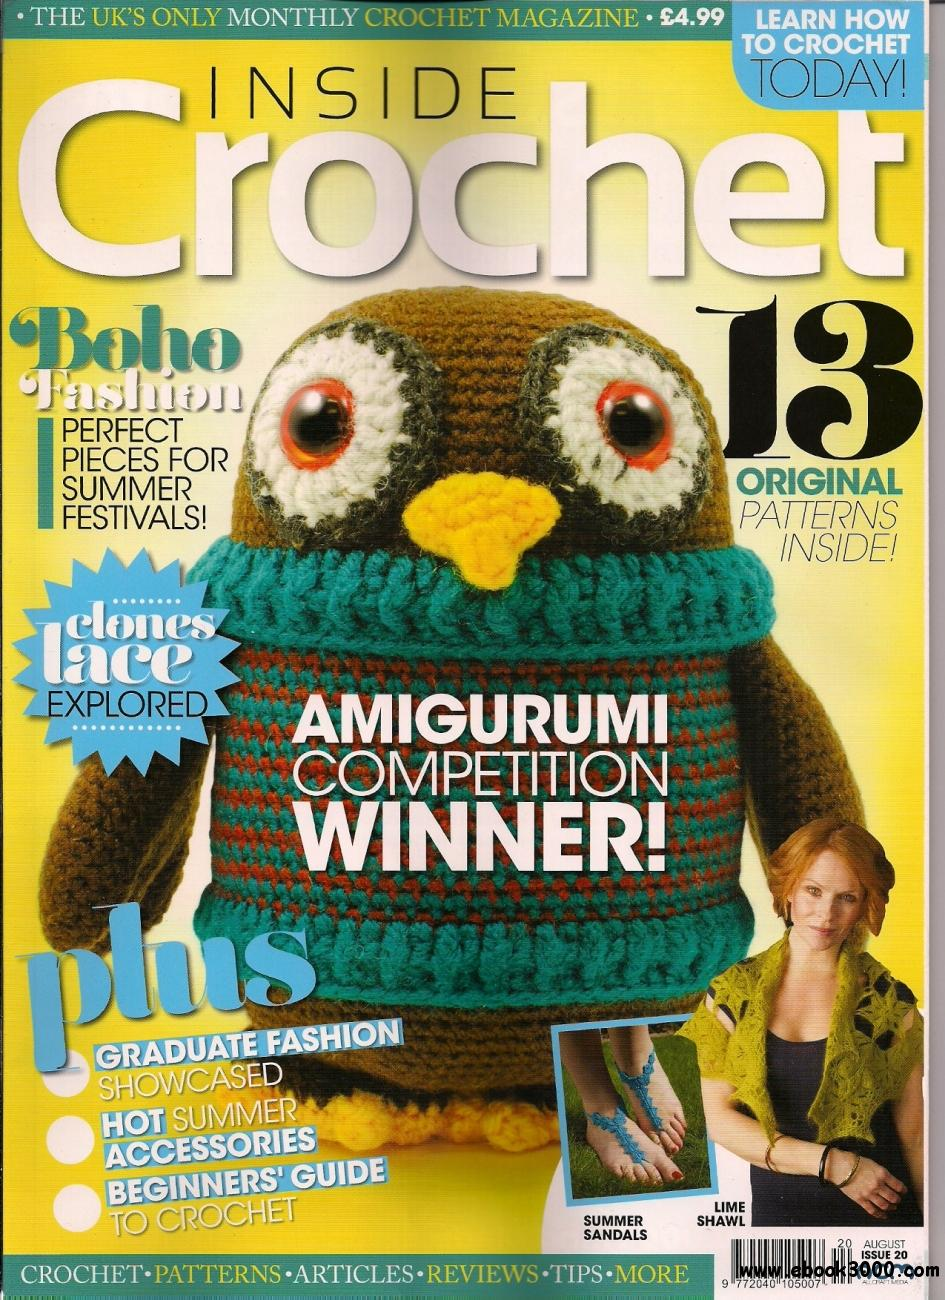 Amigurumi Collection Magazine Download : Inside Crochet, Issue 20 - August 2011 - Free eBooks Download